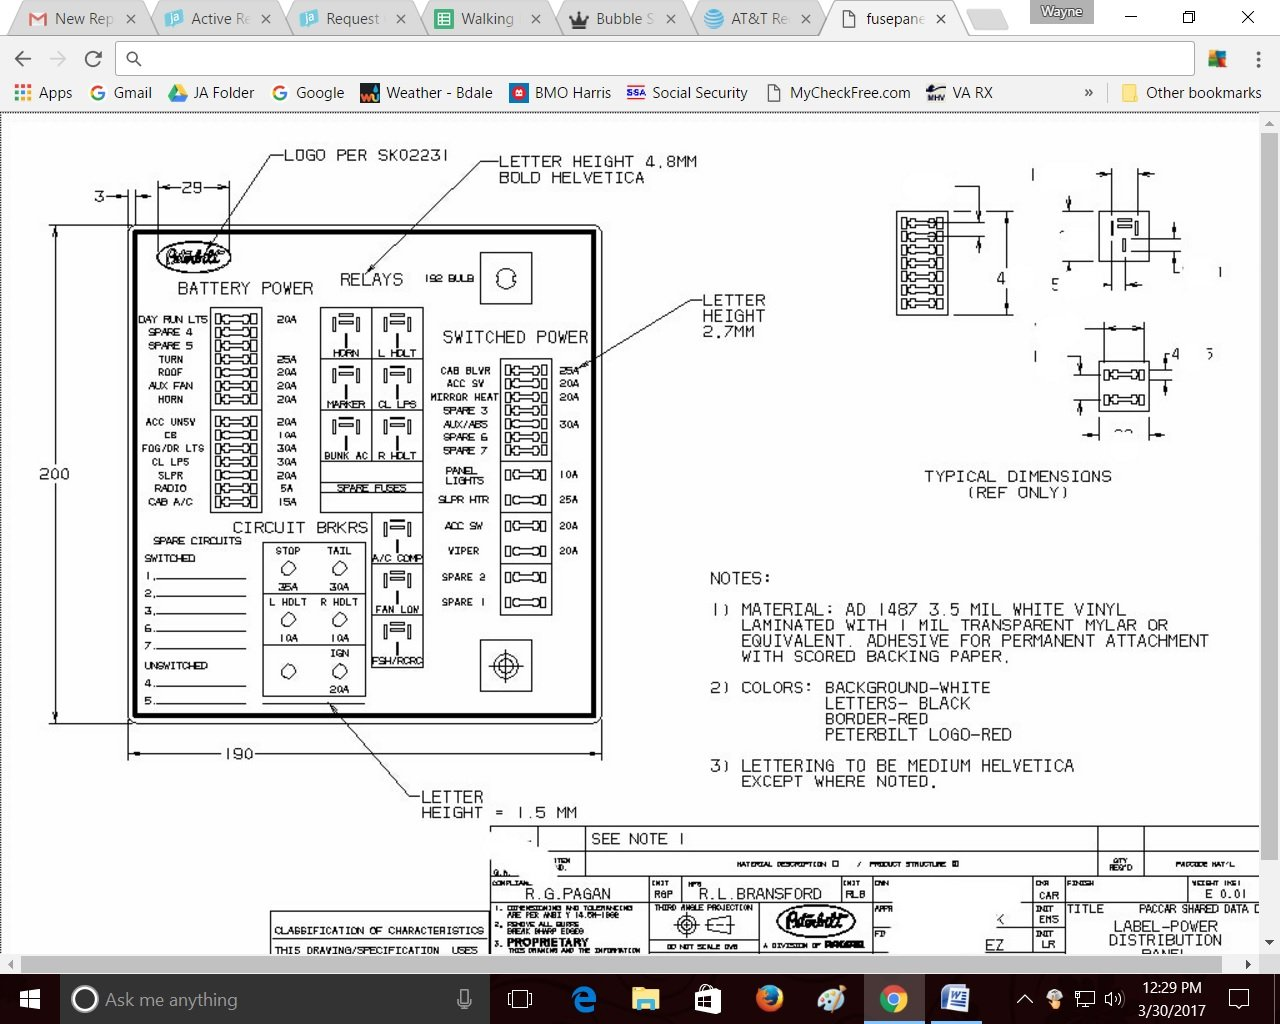 94 Kenworth T600 Fuse Box - Wiring Diagram Networks